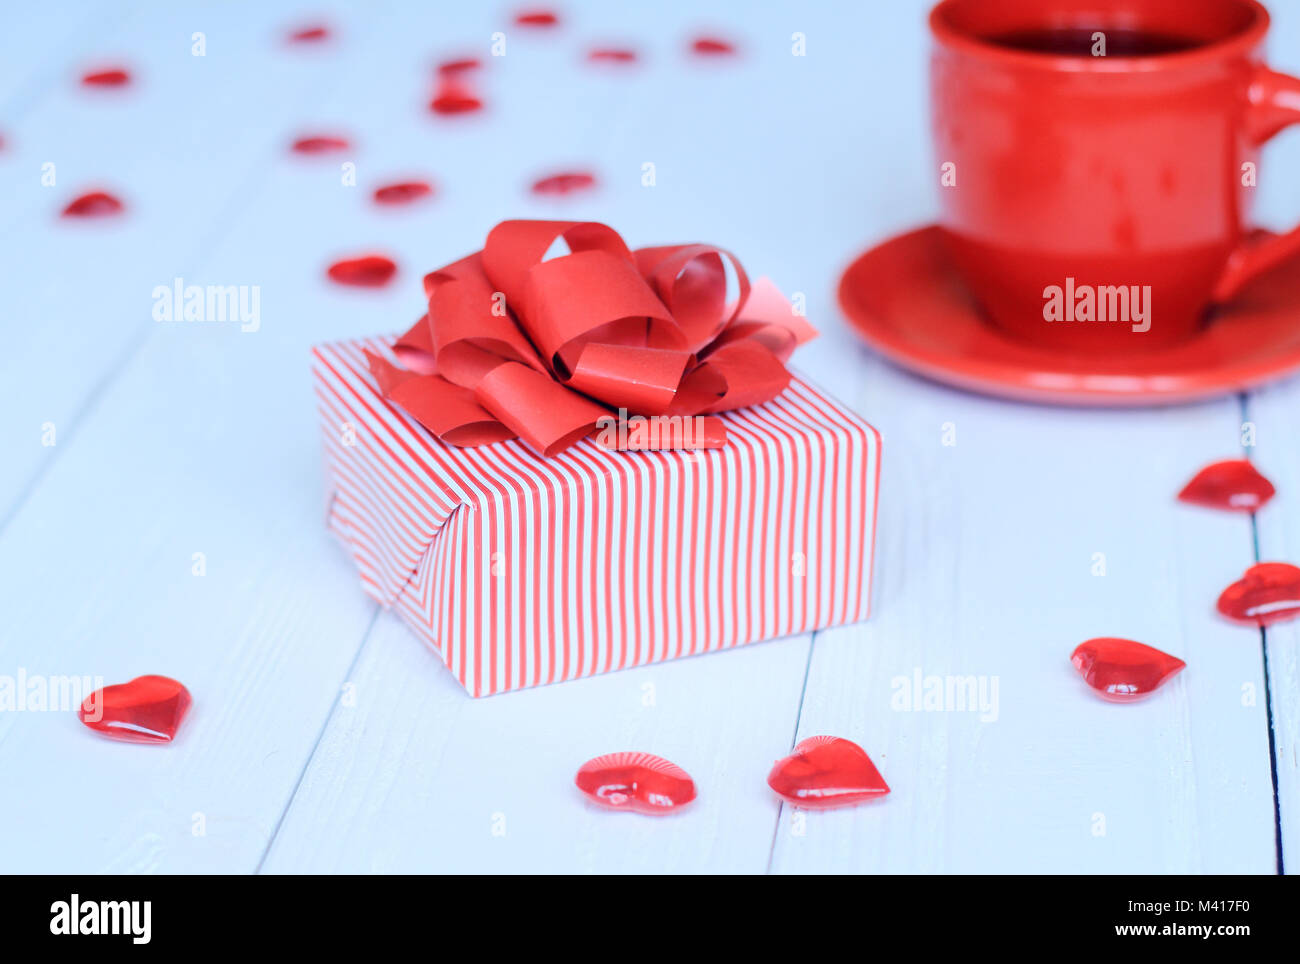 Red Cup And Saucer Stock Photos & Red Cup And Saucer Stock Images ...